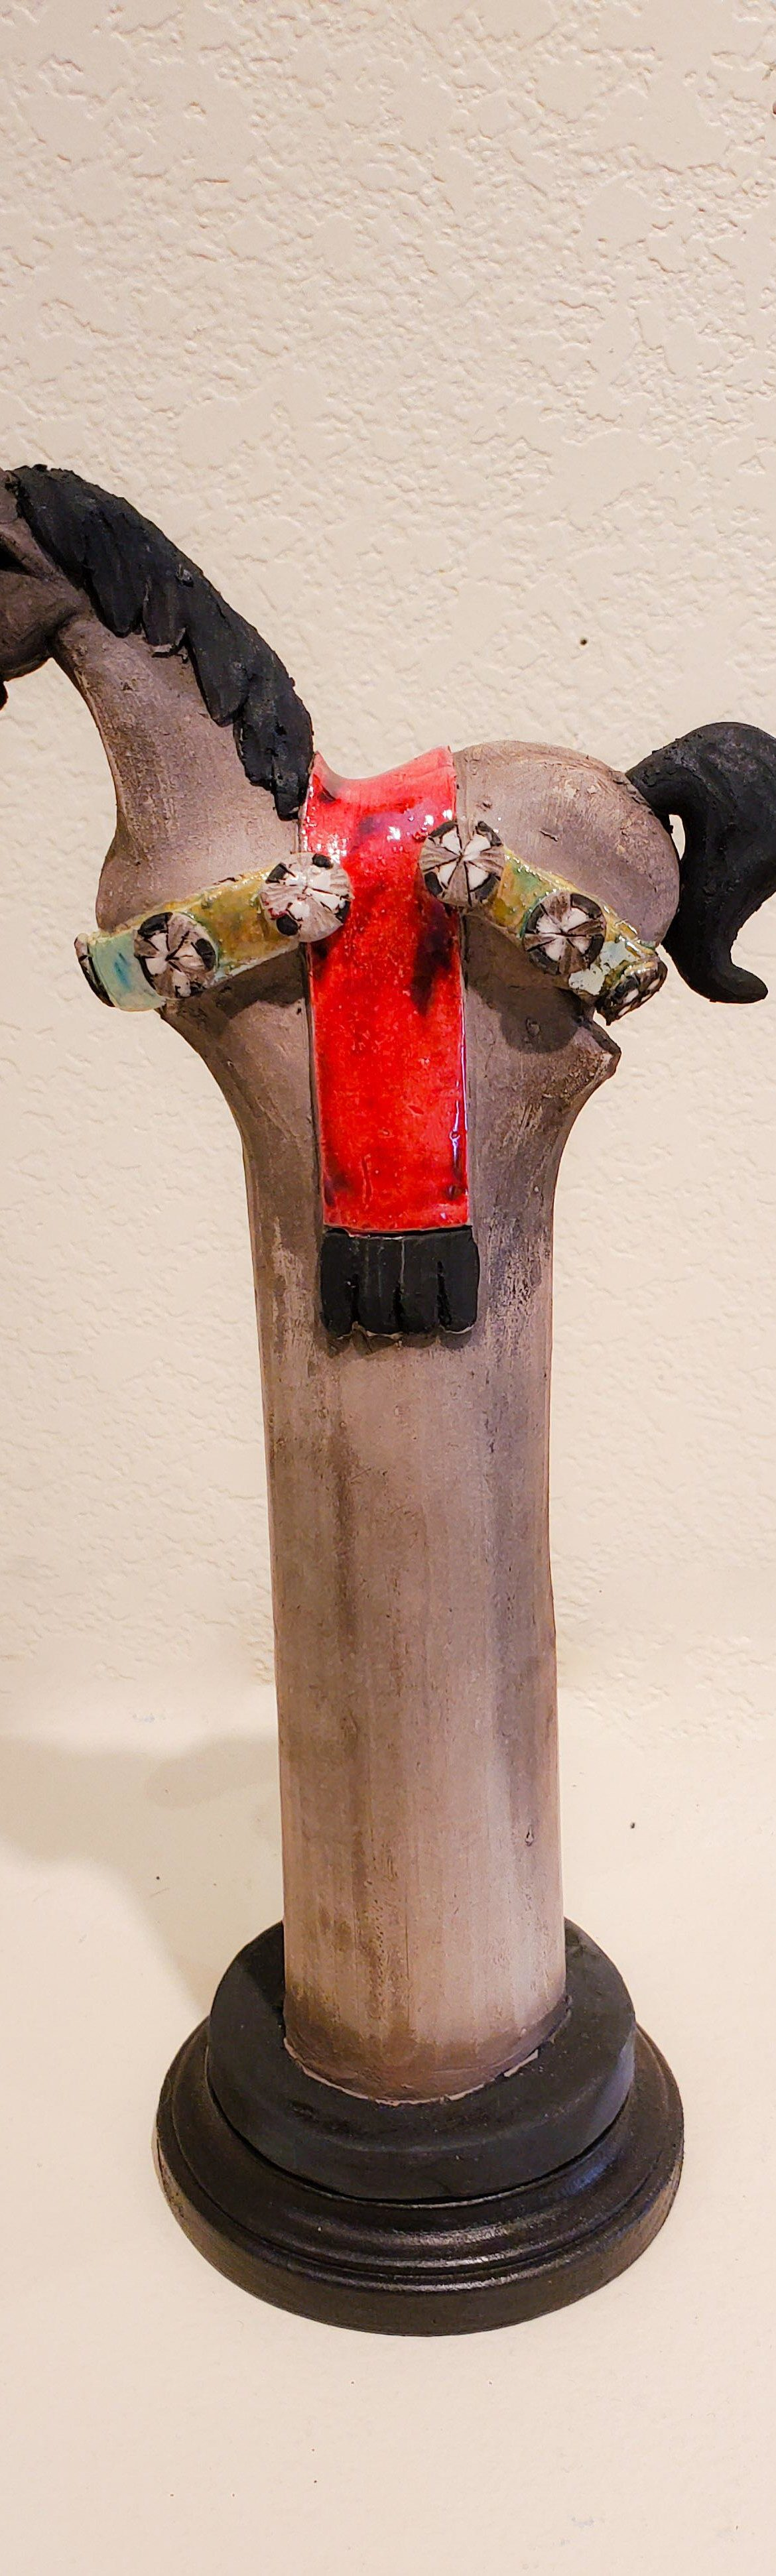 Painted Pony #10, John Booth, Ceramic Sculpture, Rogoway Gallery